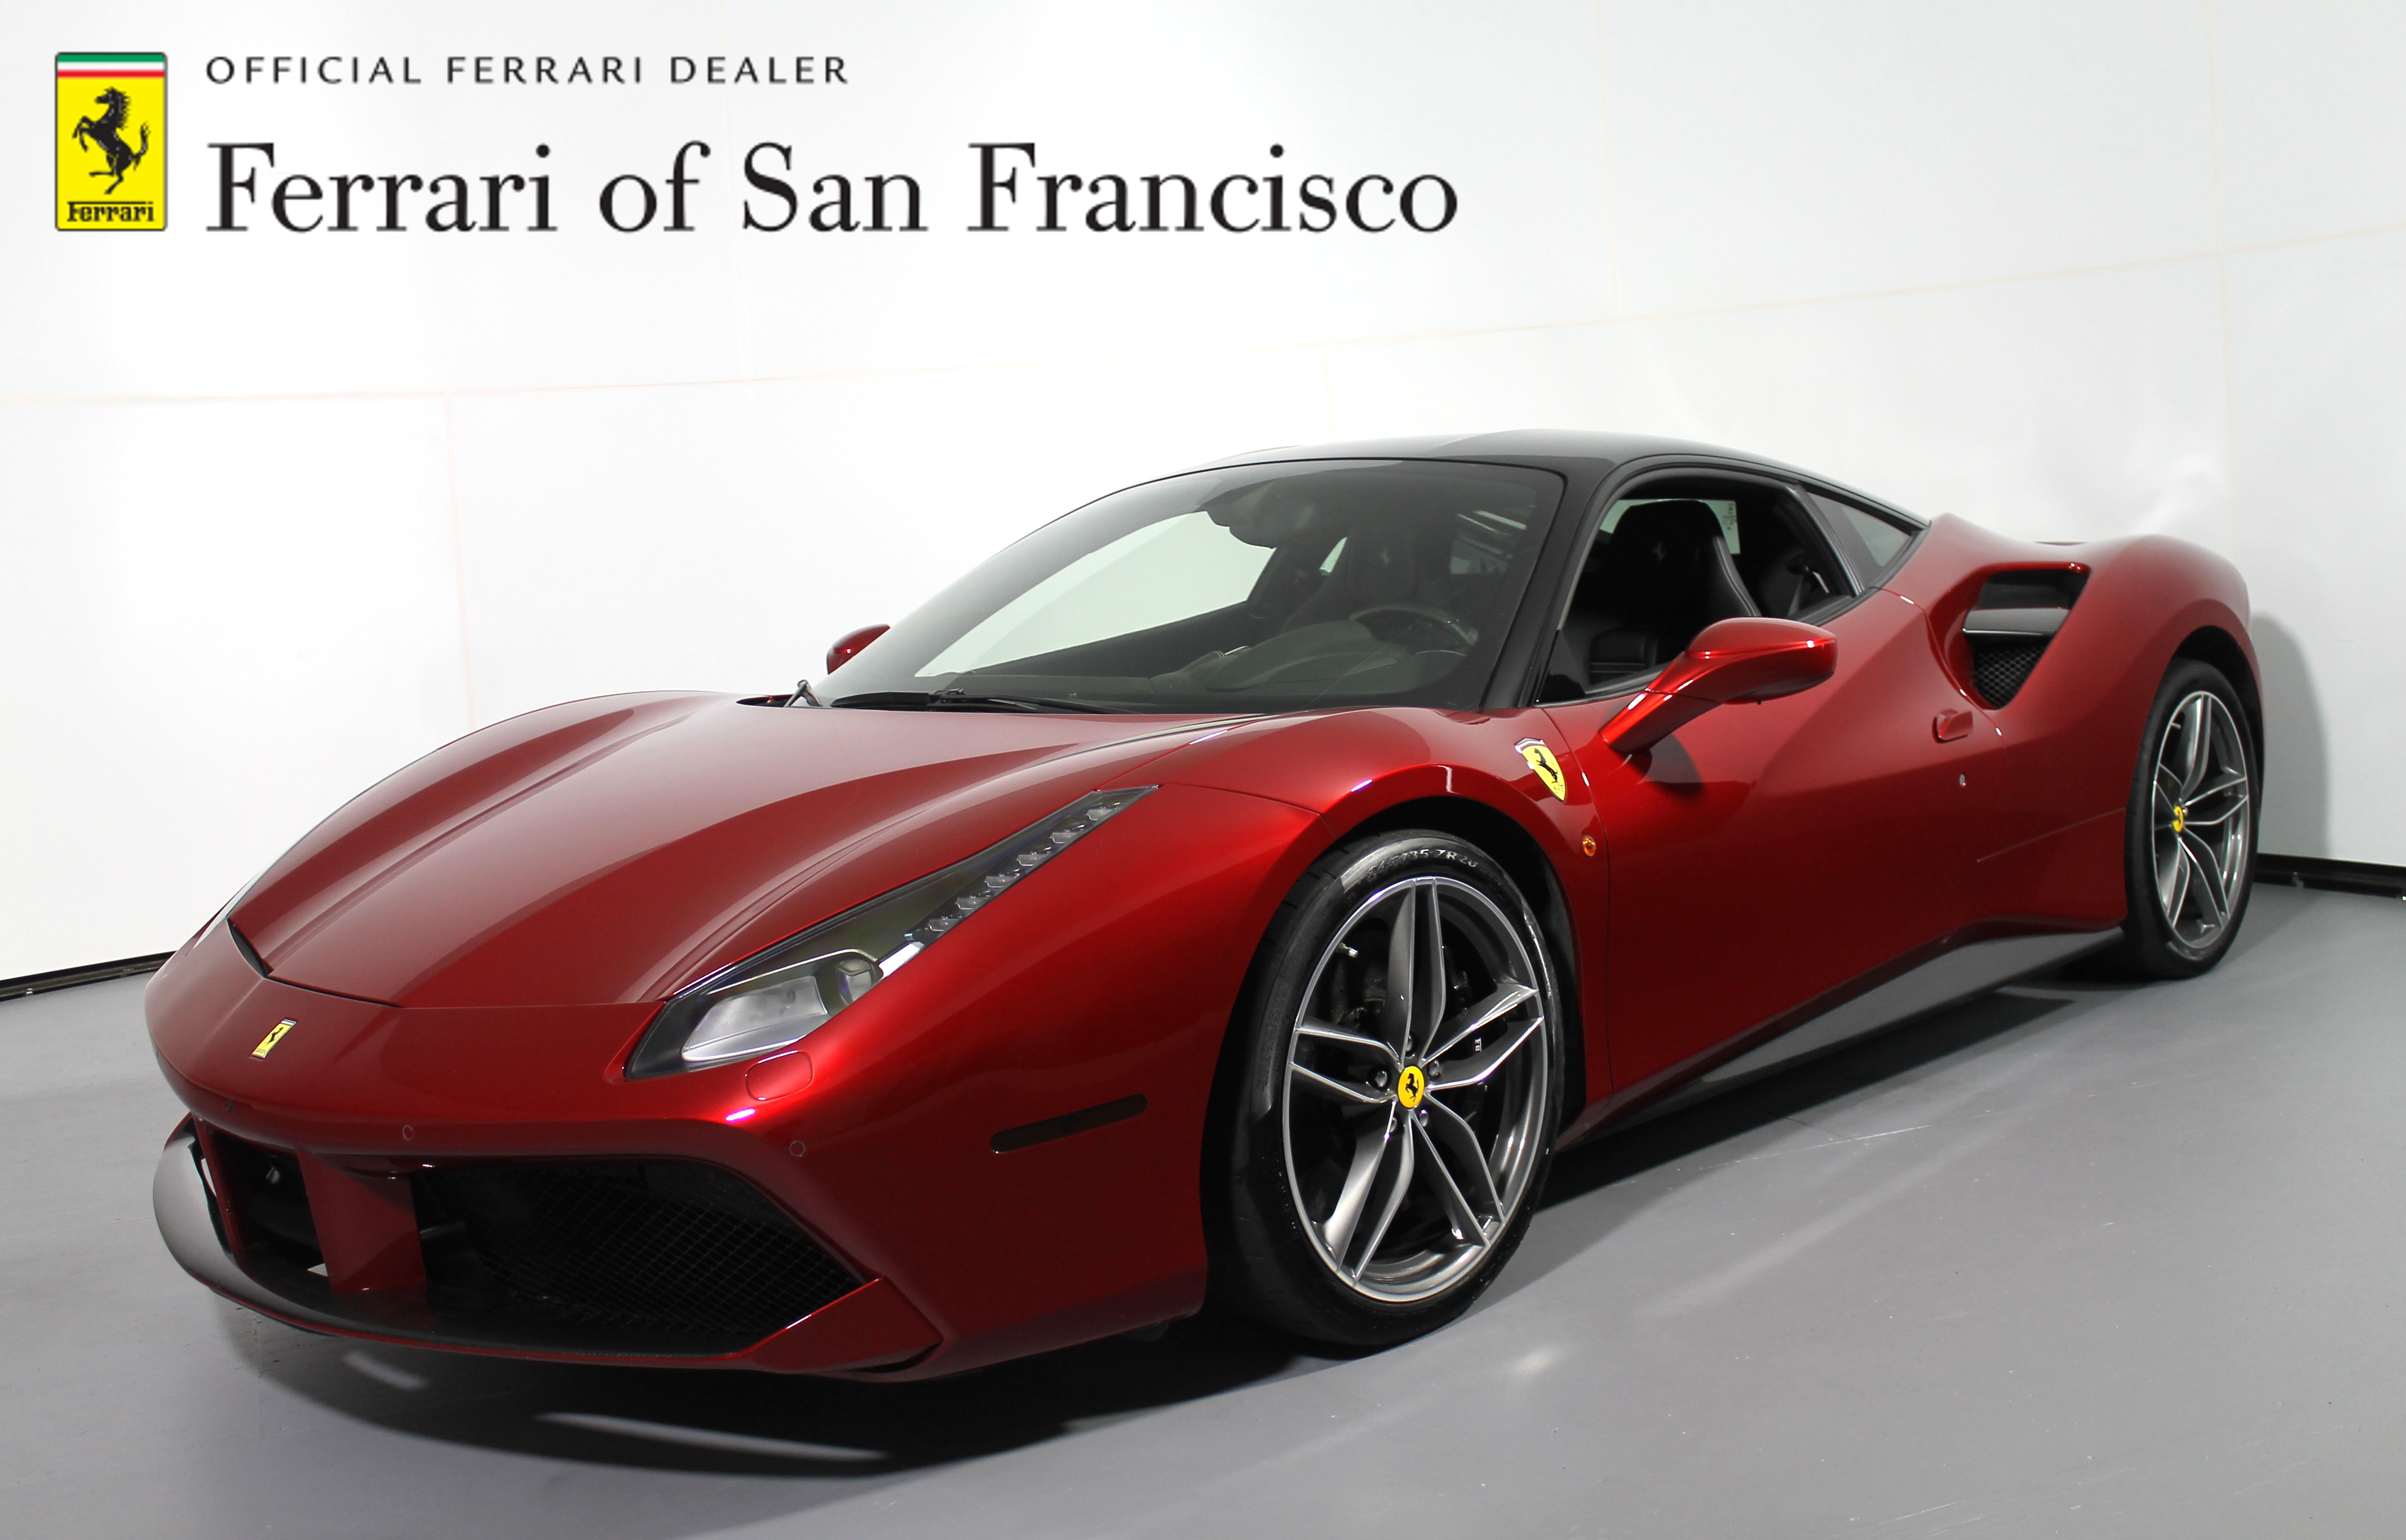 2016 ferrari 488 gtb base coupe 2 door. Cars Review. Best American Auto & Cars Review